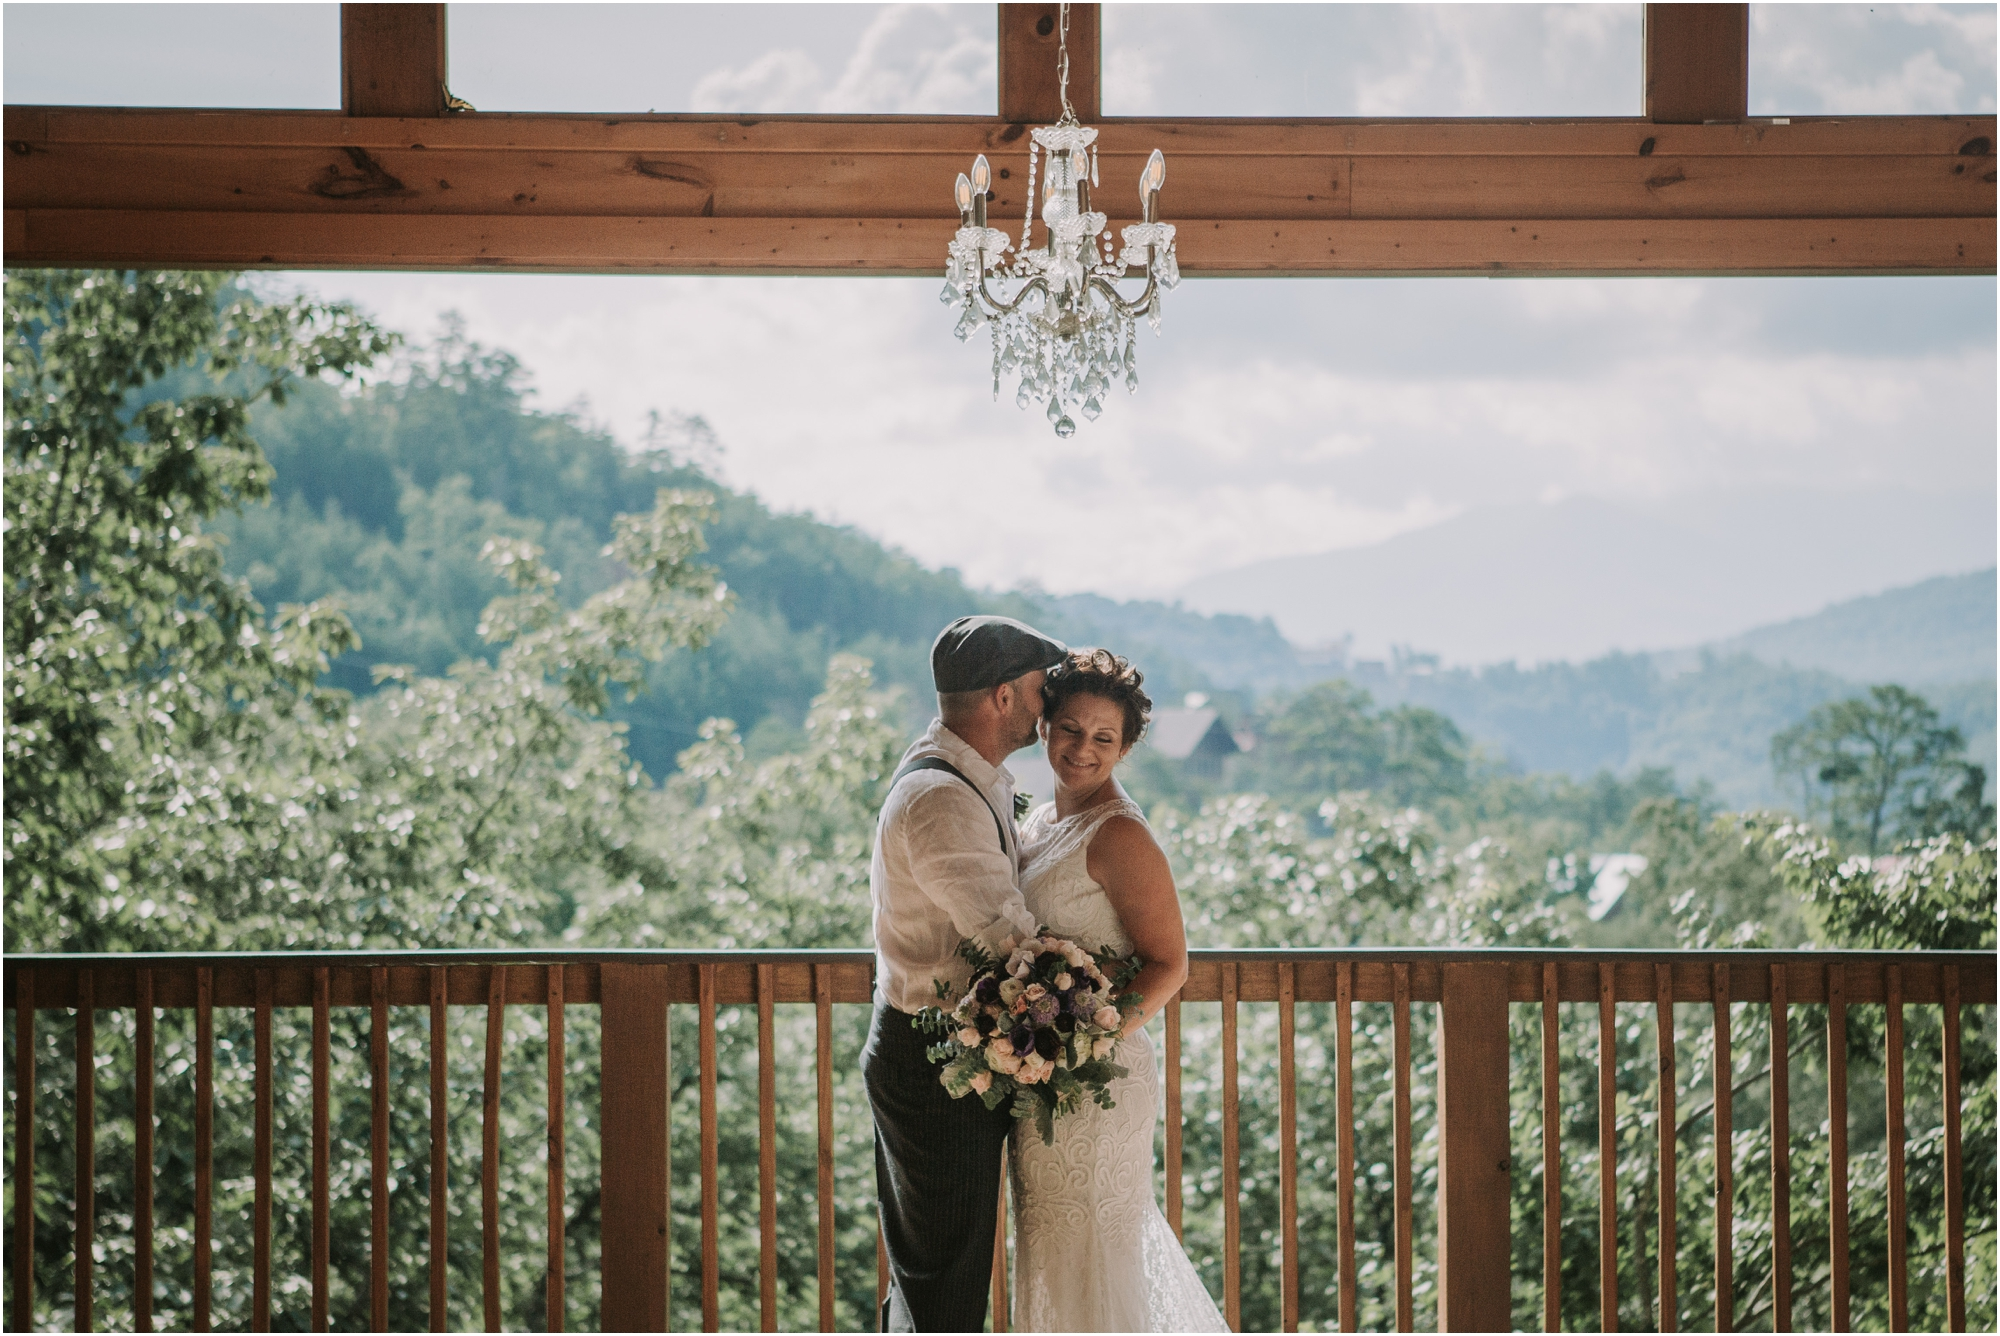 cabin-parkside-resort-the-magnolia-venue-tennessee-mountain-views-intimate-wedding_0072.jpg